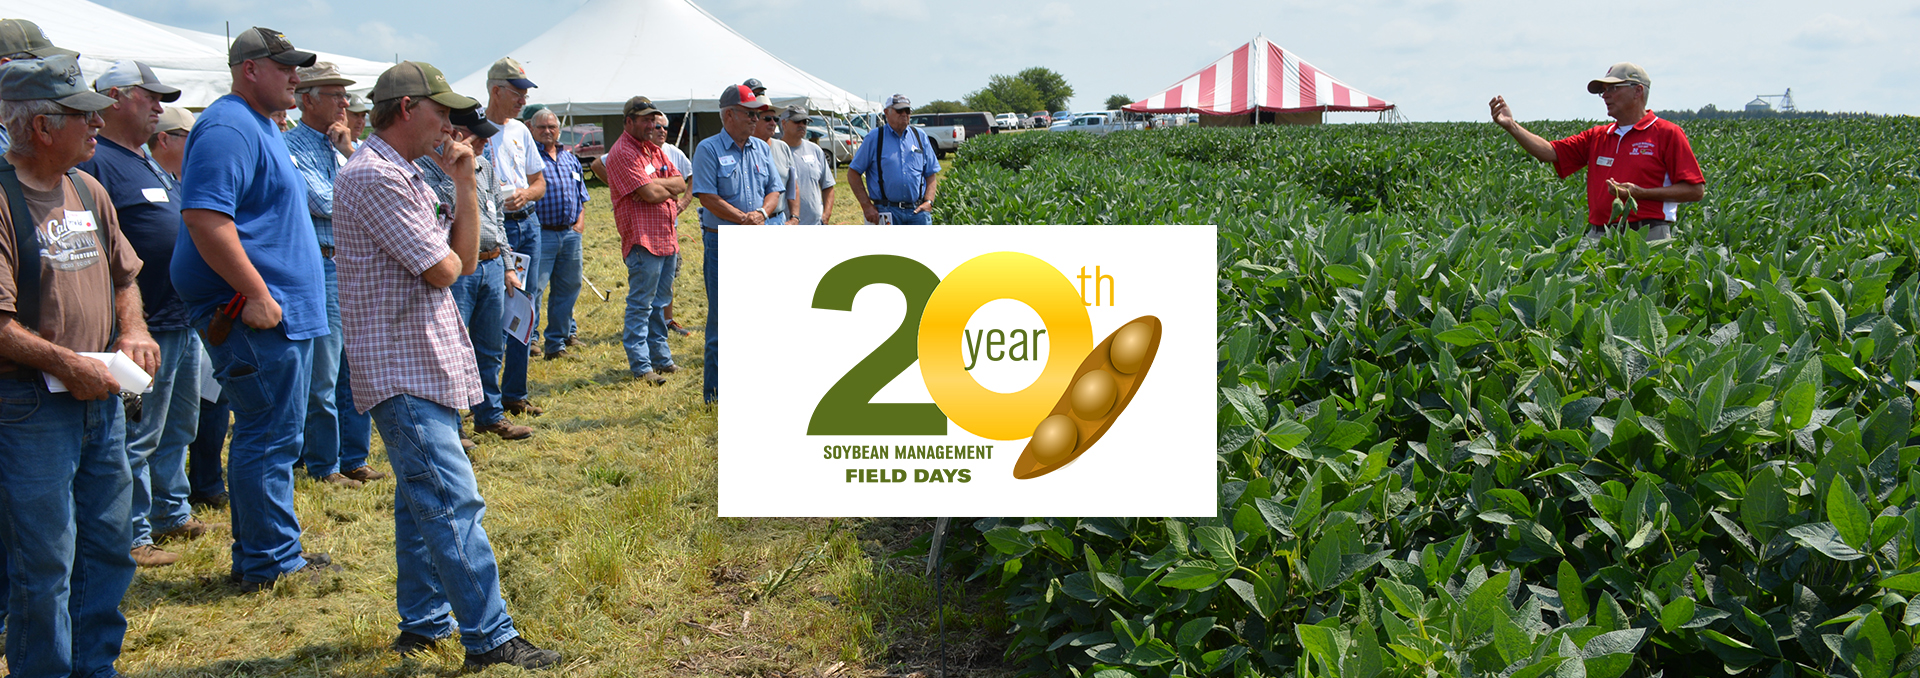 Soybean Management Field Days